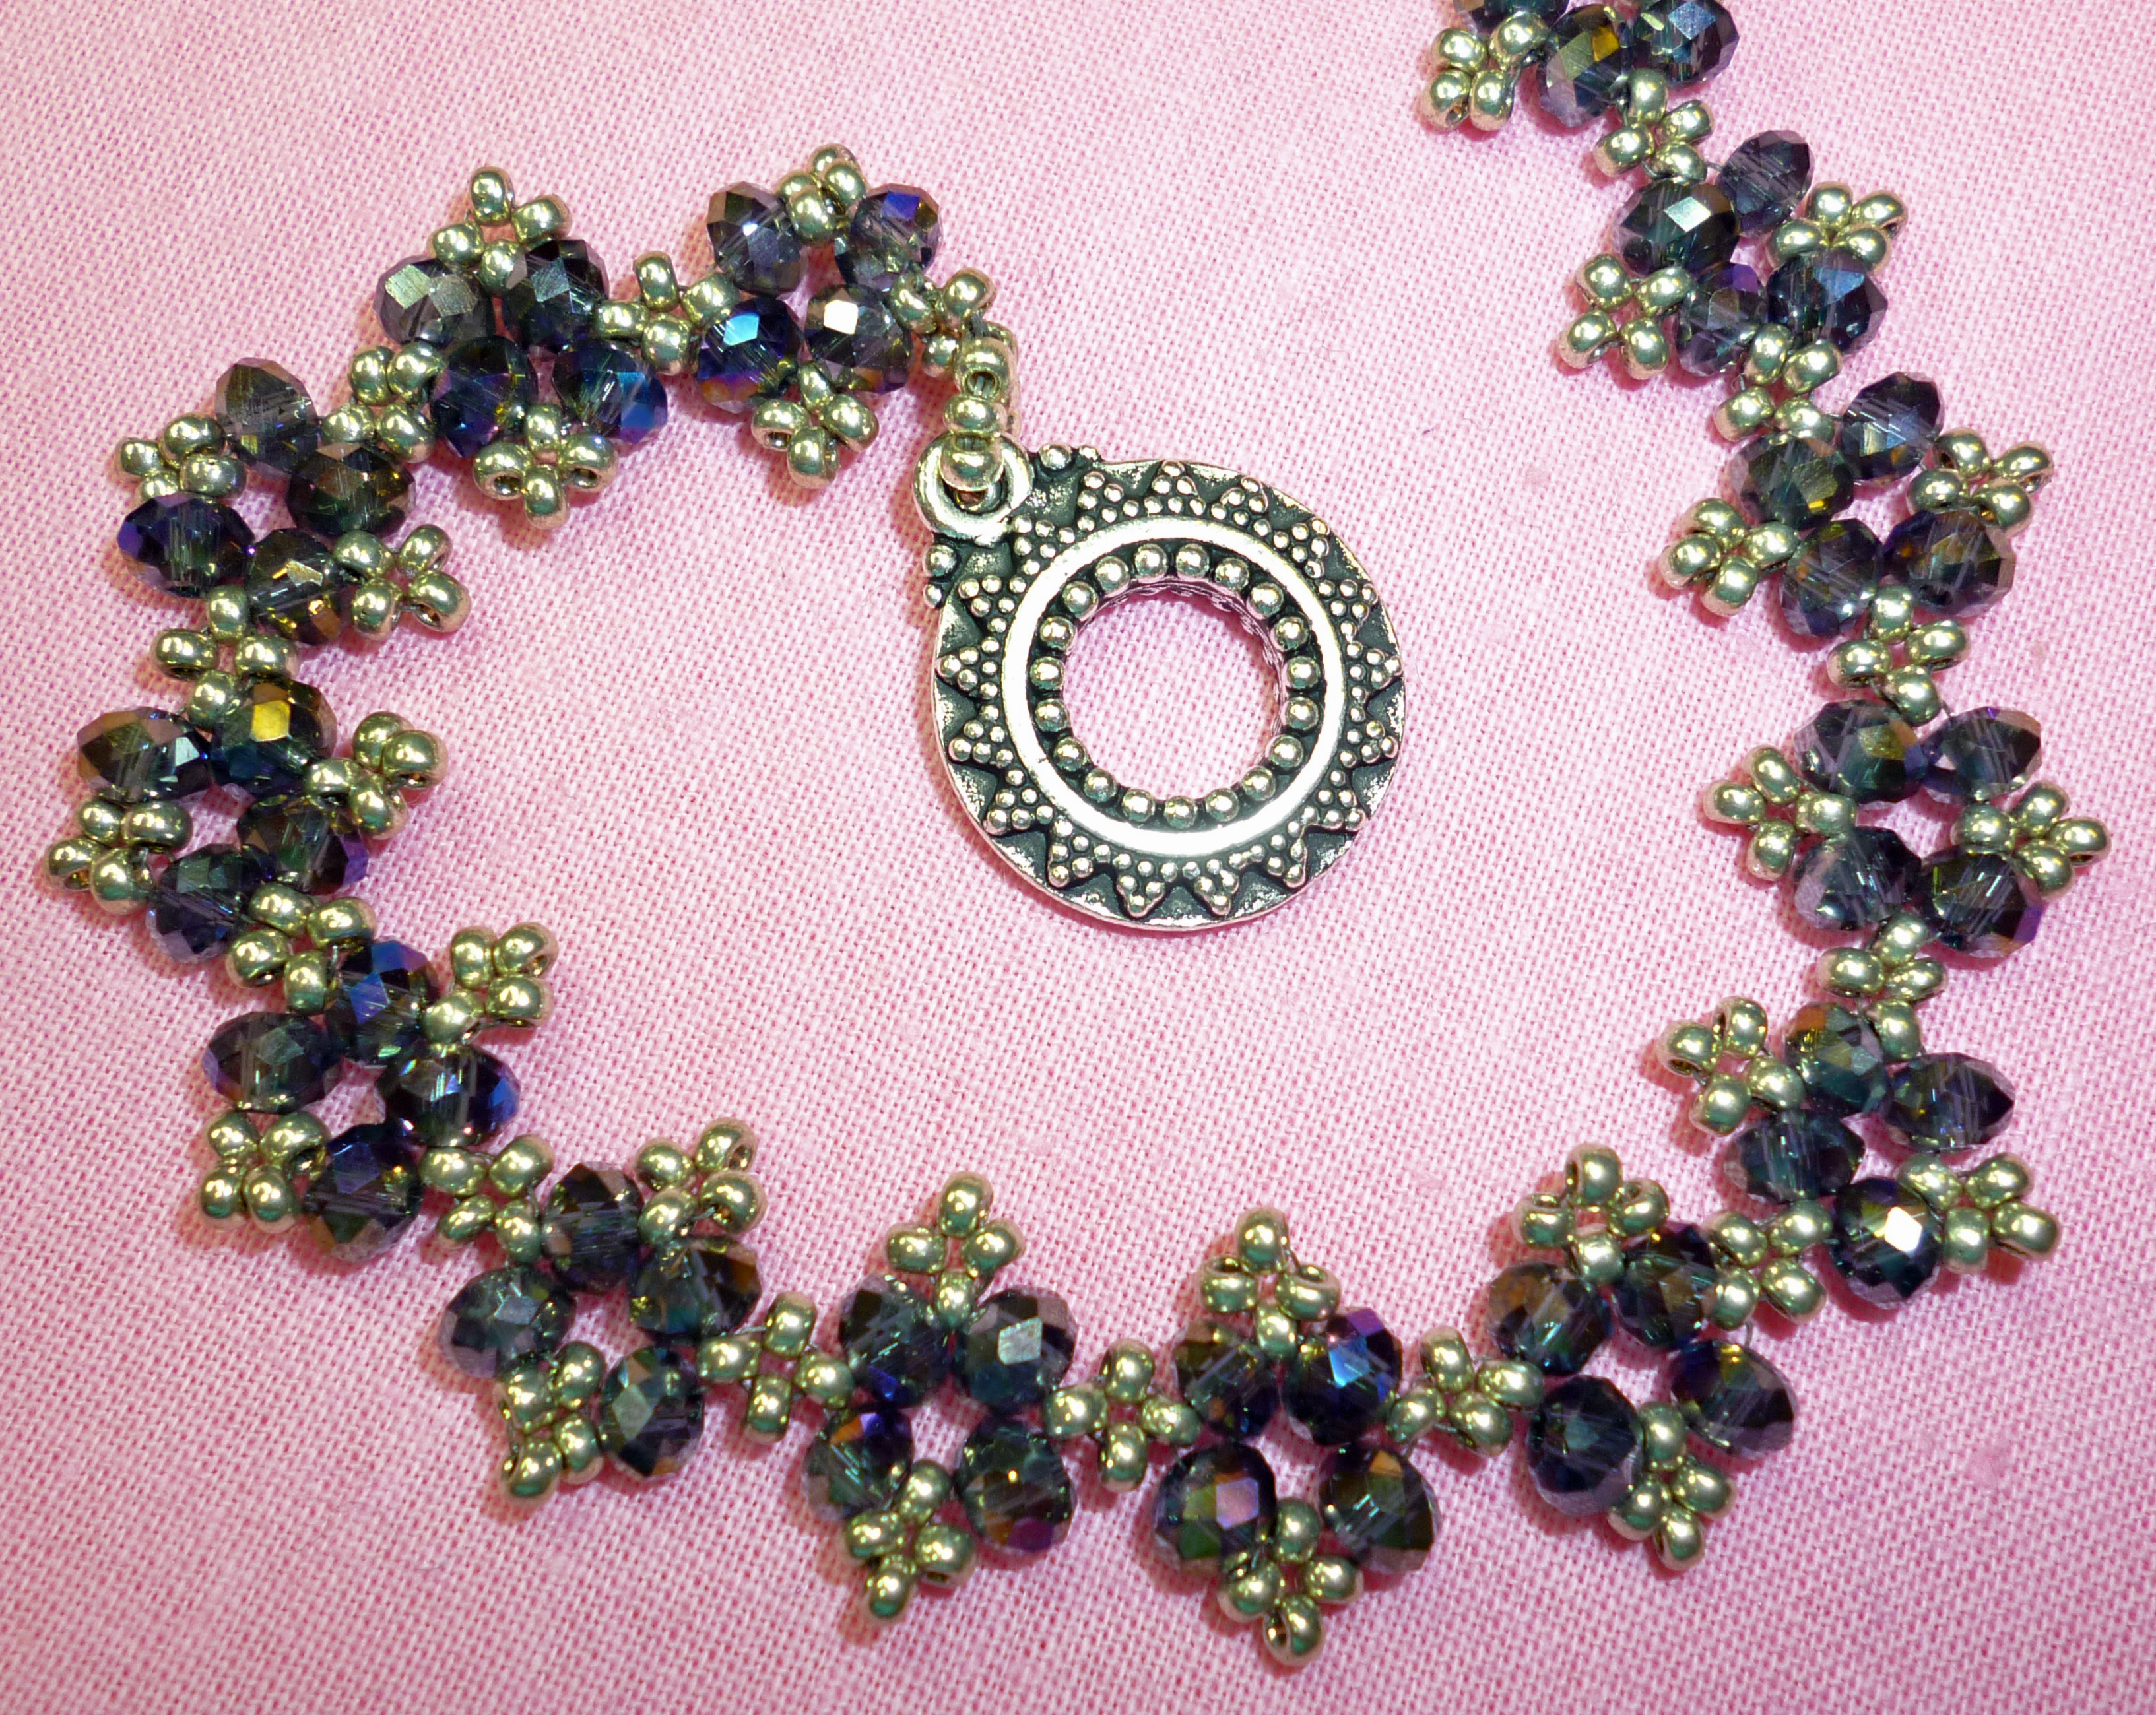 13 brooch beading designs images free beaded jewelry